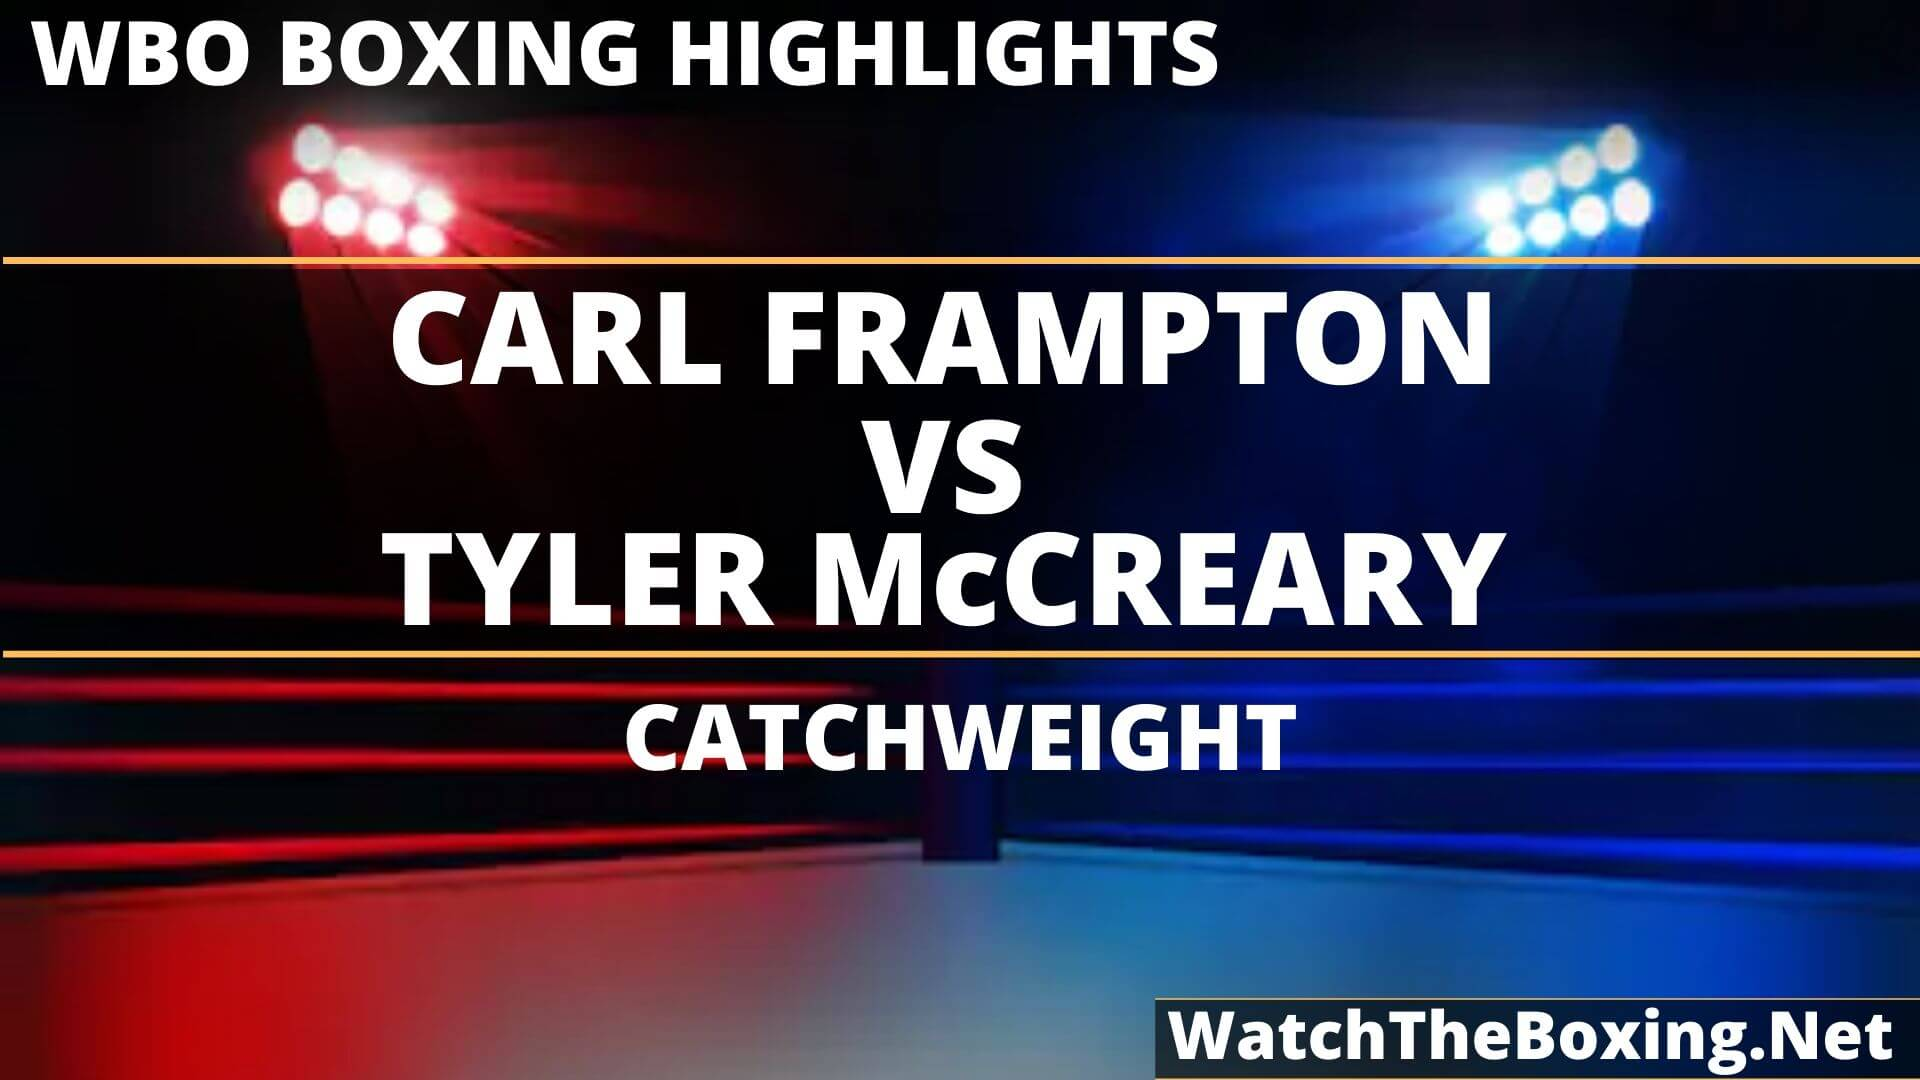 Carl Frampton Vs Tyler Mccreary Highlights 2019